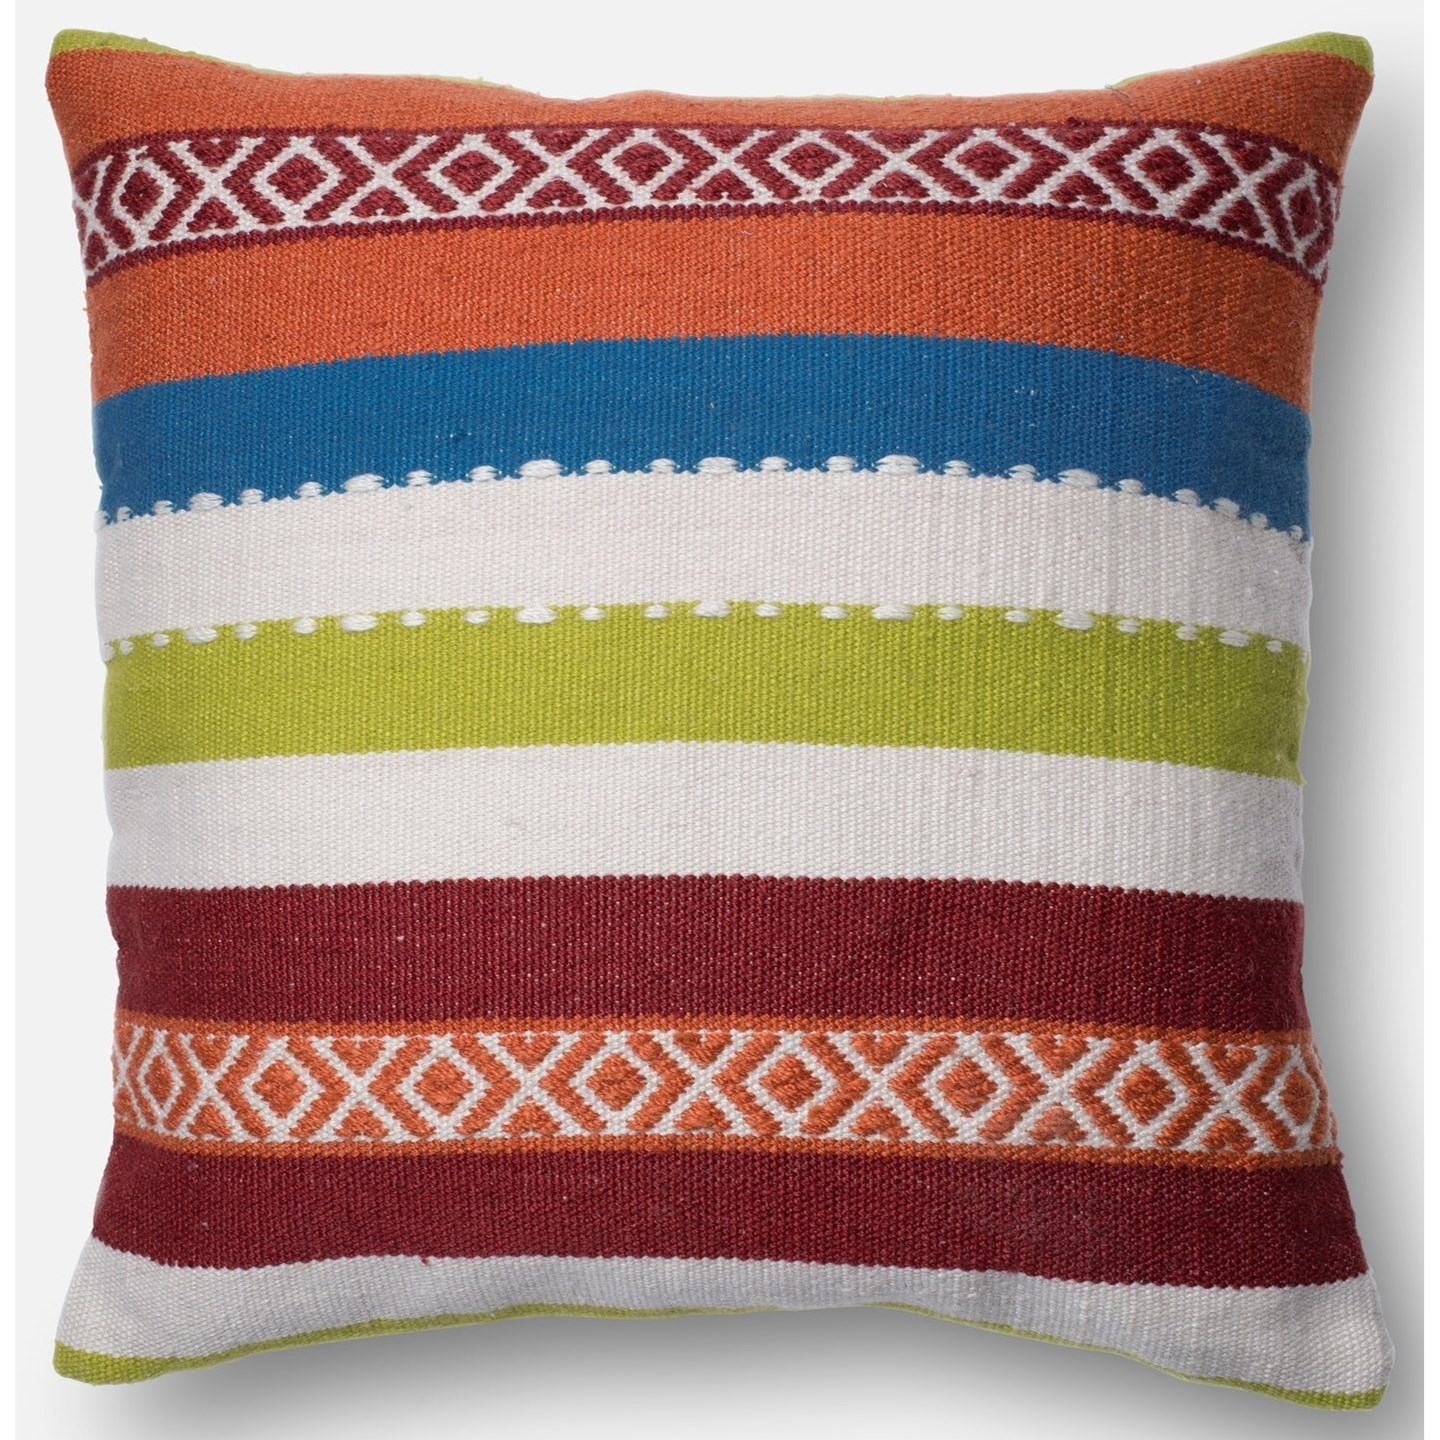 "Indoor/Outdoor Pillows 22"" X 22""  Pillow Cover Only by Loloi Rugs at Sprintz Furniture"